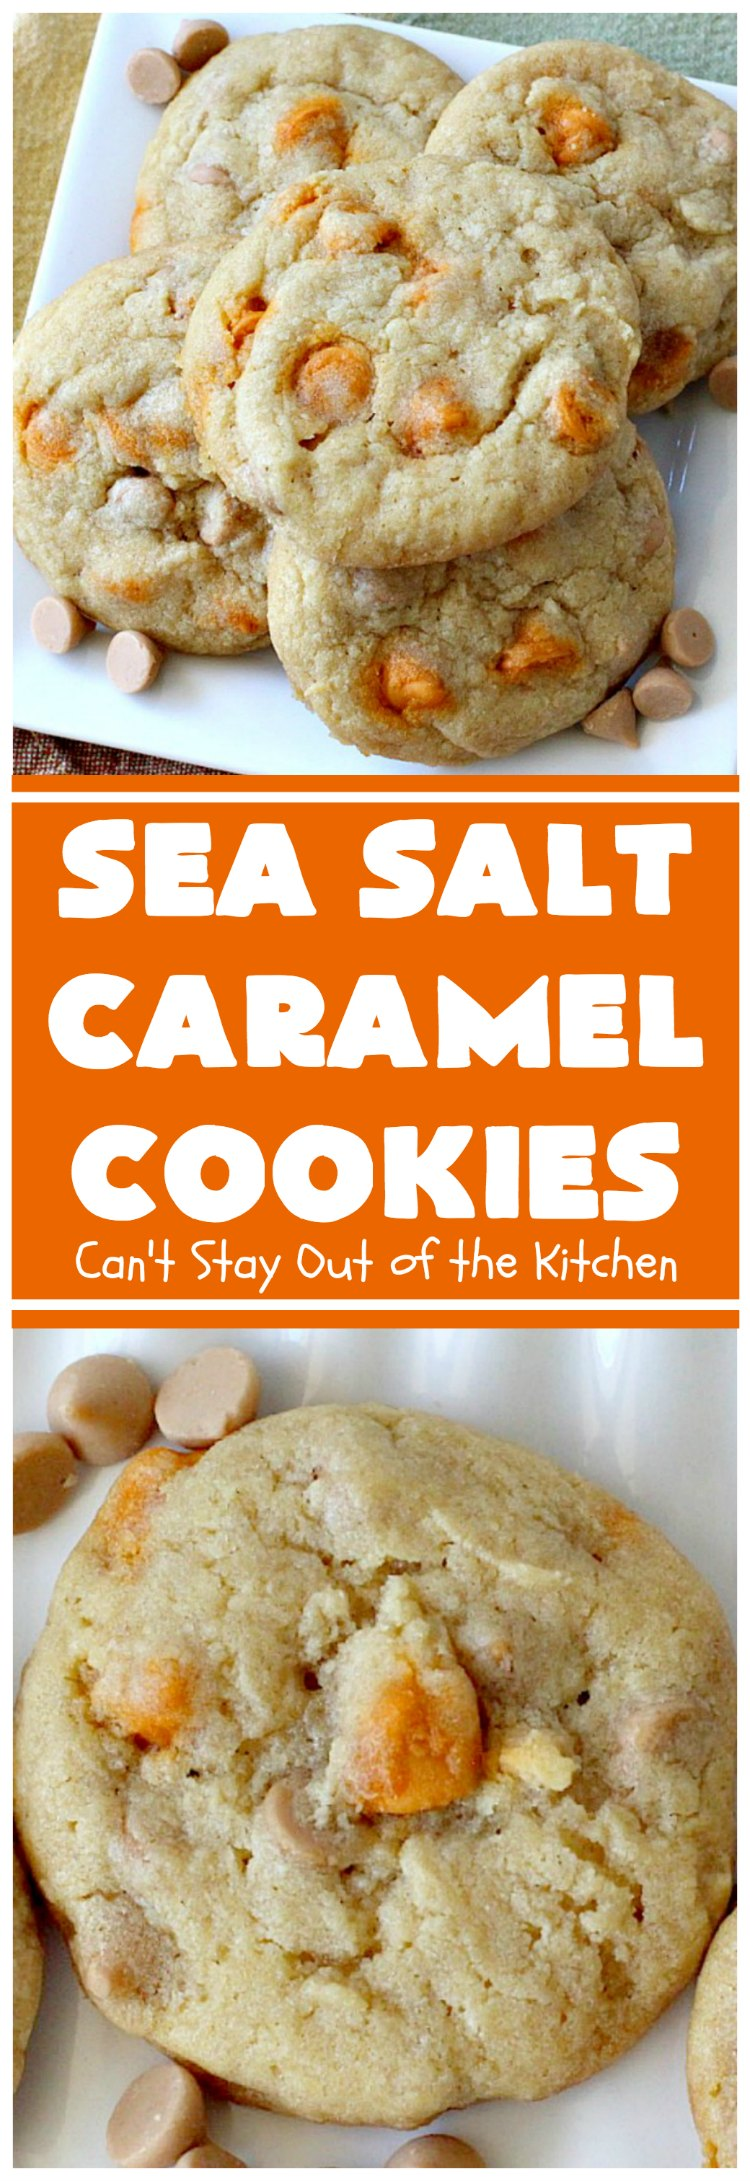 Sea Salt Caramel Peanut Butter Cookies - Can't Stay Out of ...